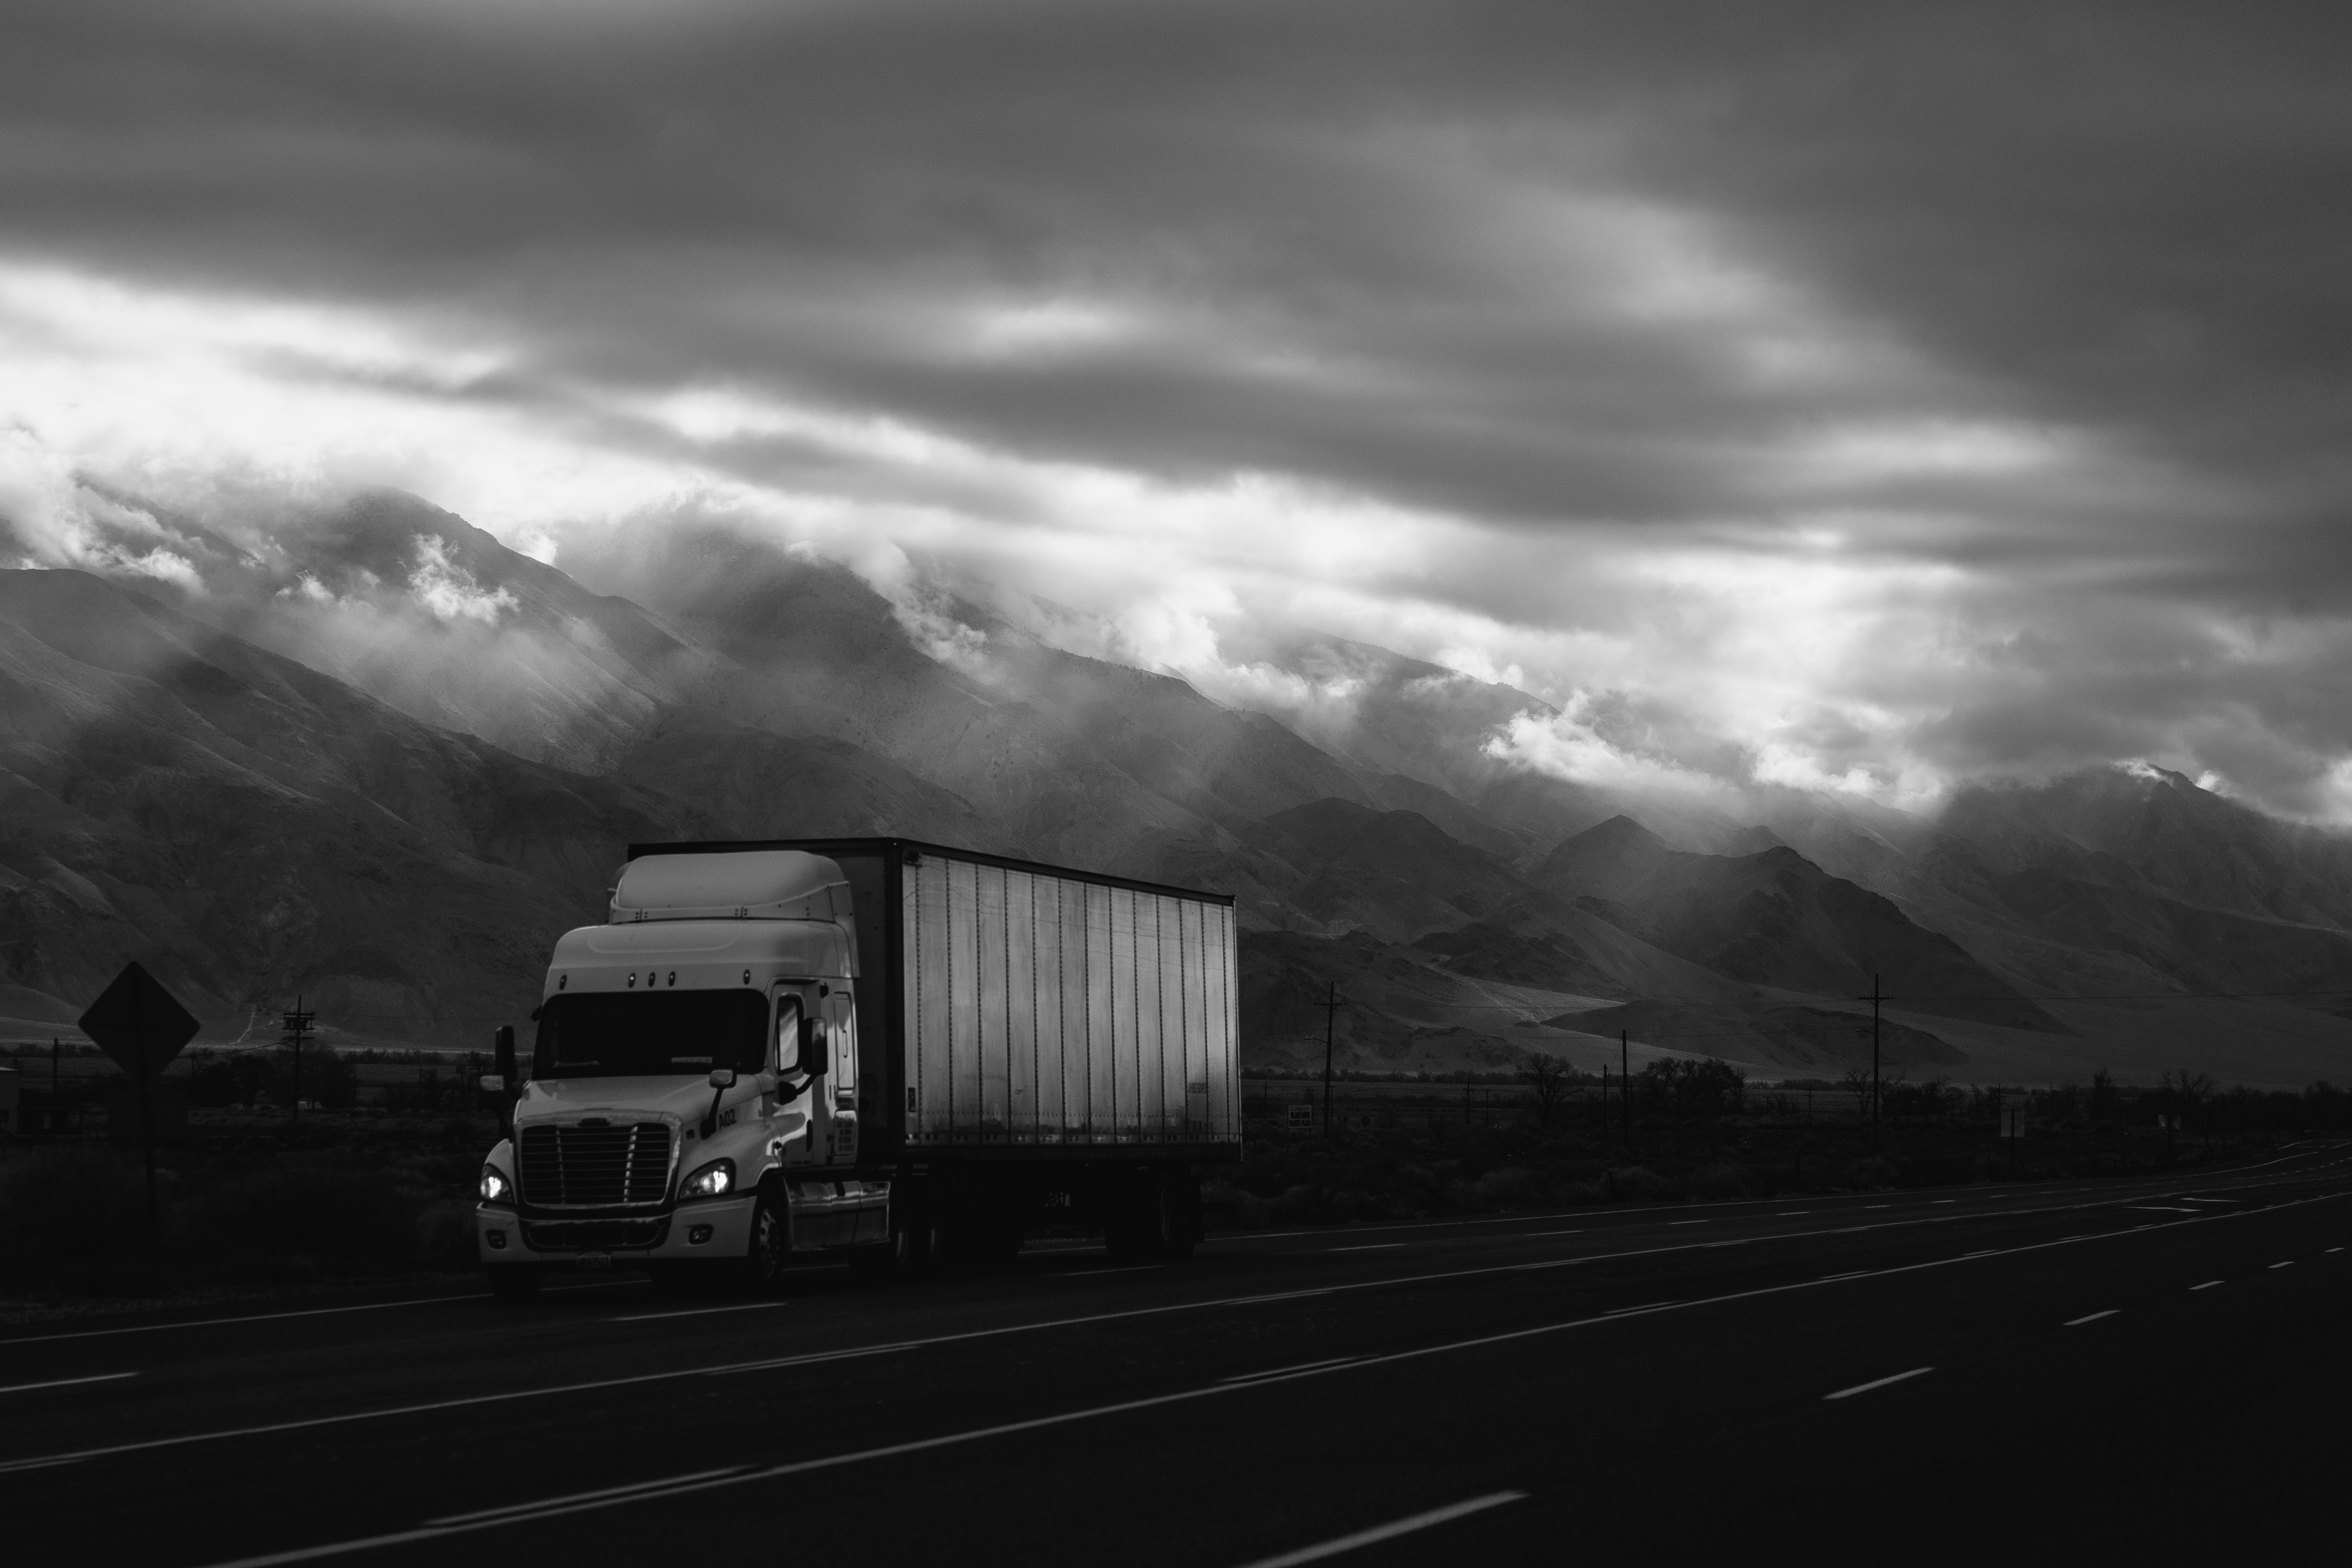 Black and white image of a truck driving